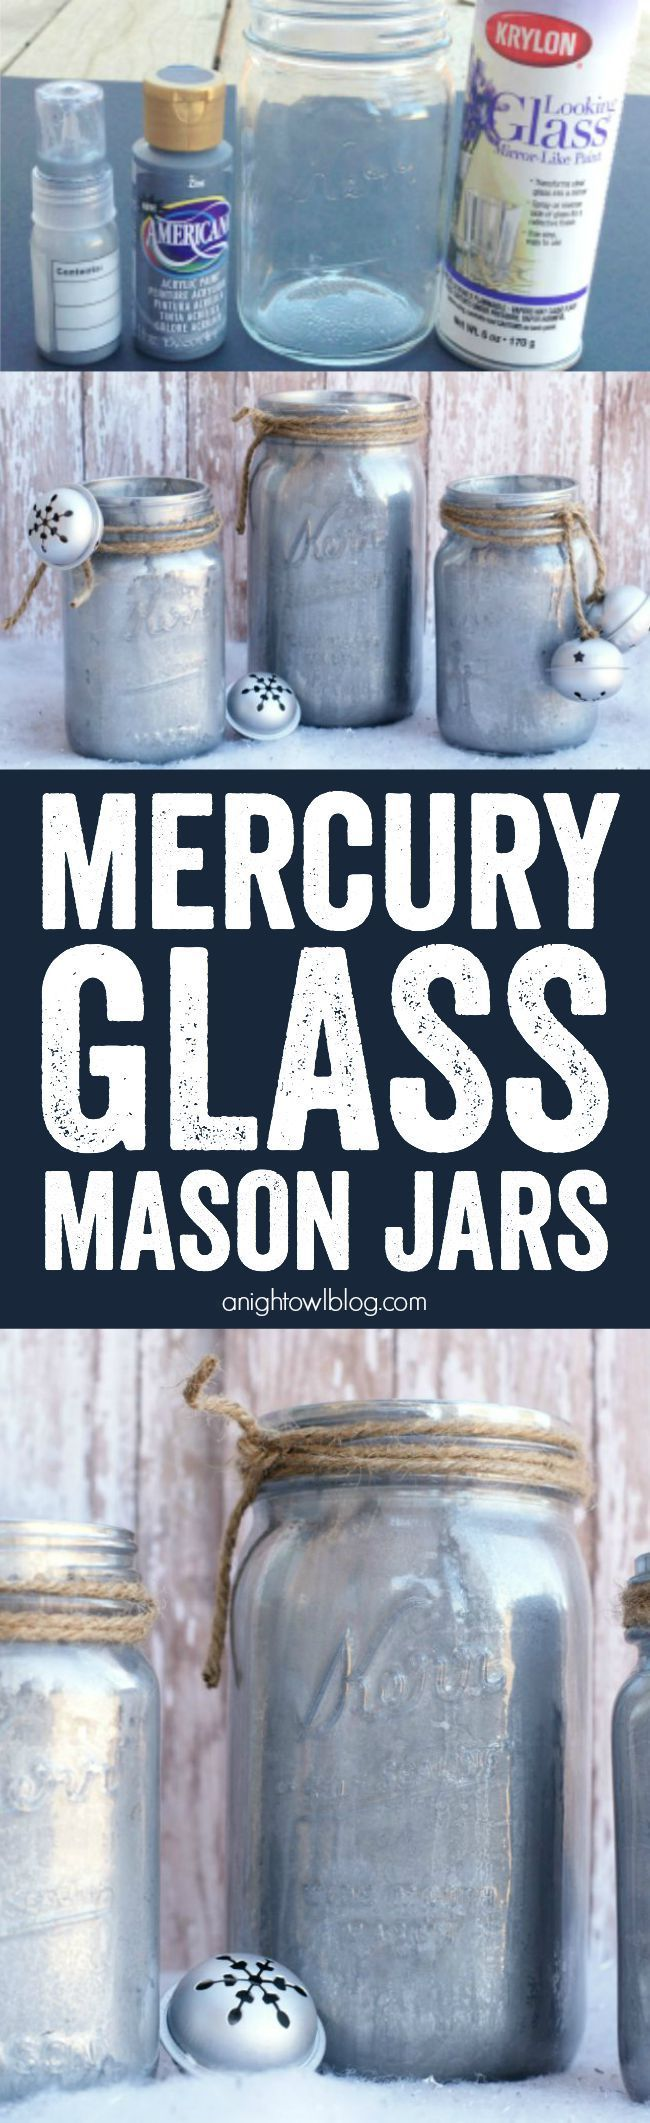 DIY Mercury Glass Mason Jars - a fun and EASY craft that is perfect for your holiday decor or gifts!